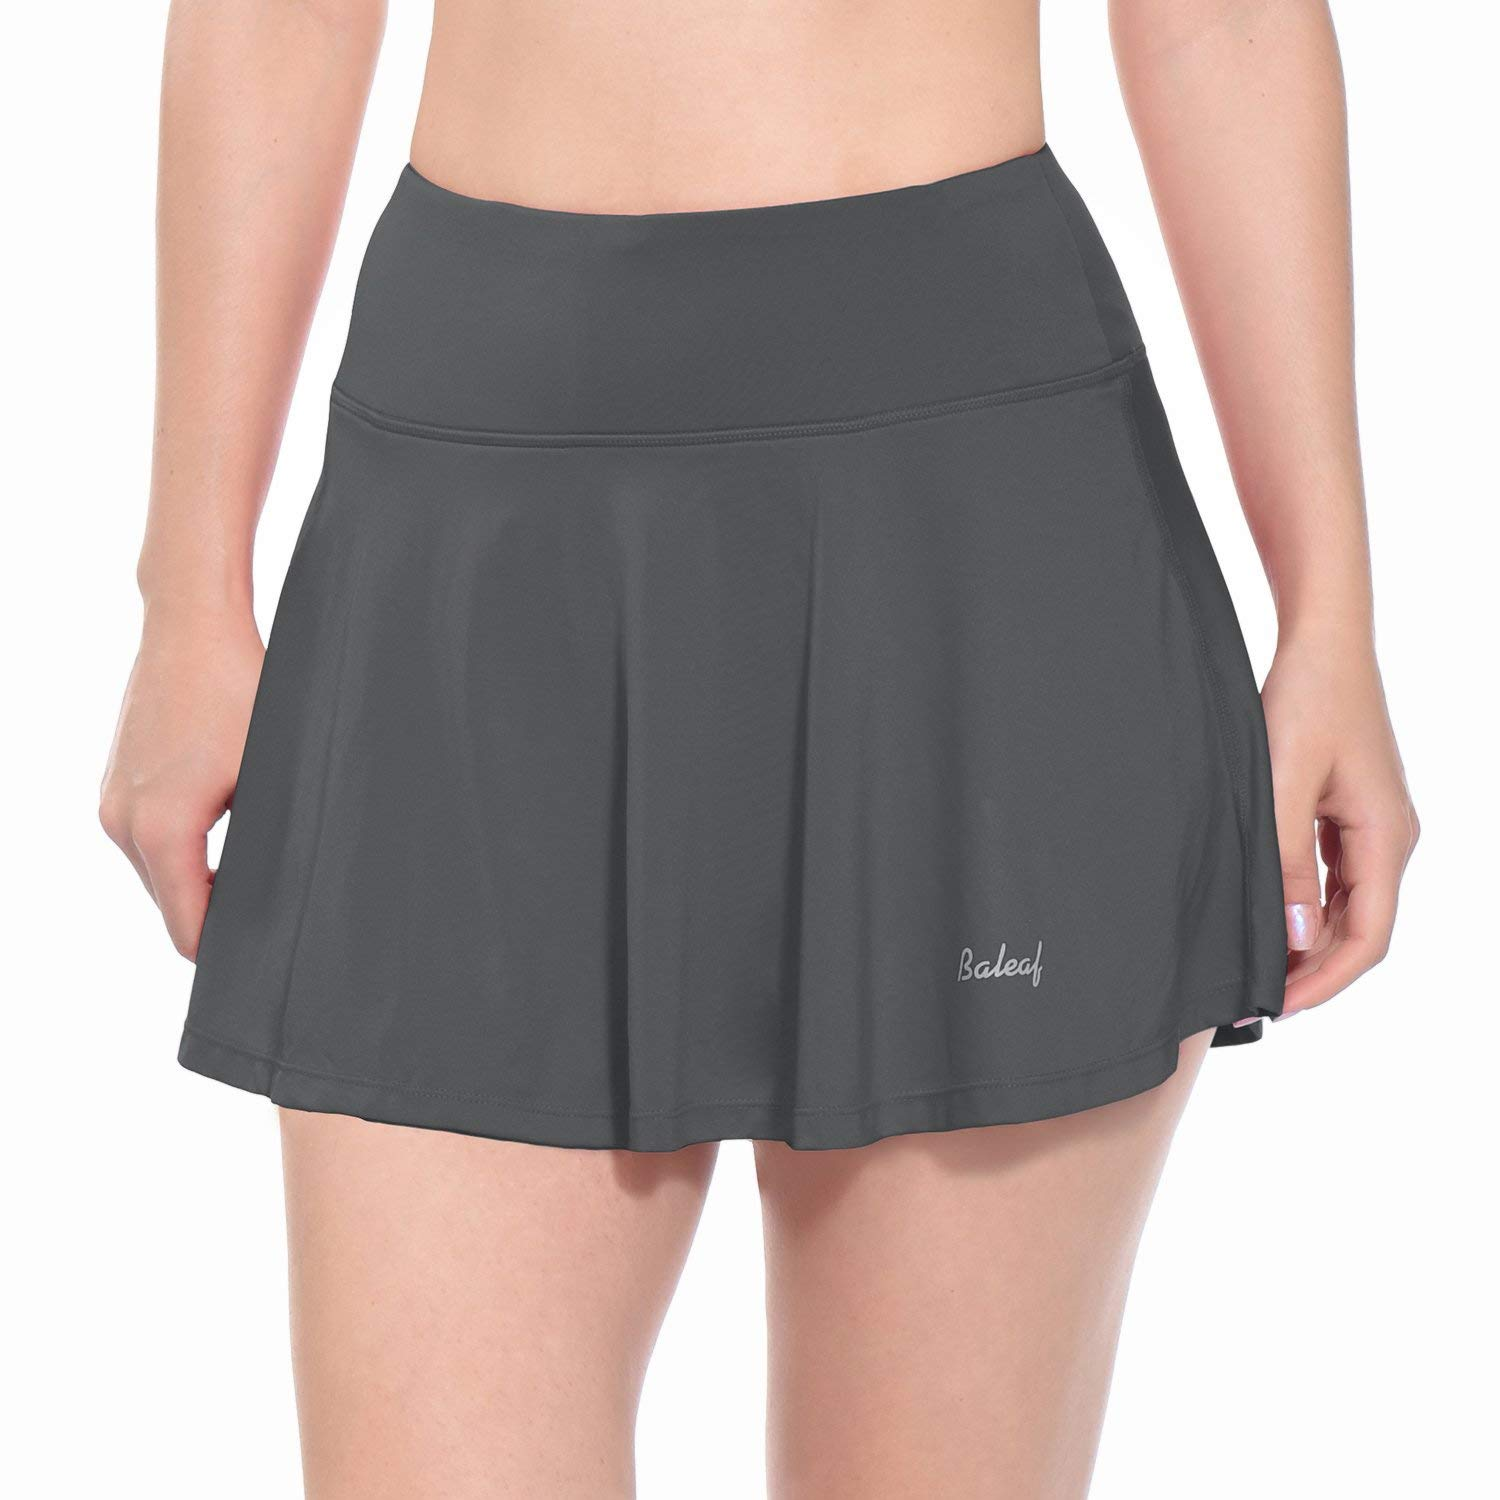 Baleaf Women's Athletic Golf Skirt Tennis Skort Pleated with Pockets Grey Size M by Baleaf